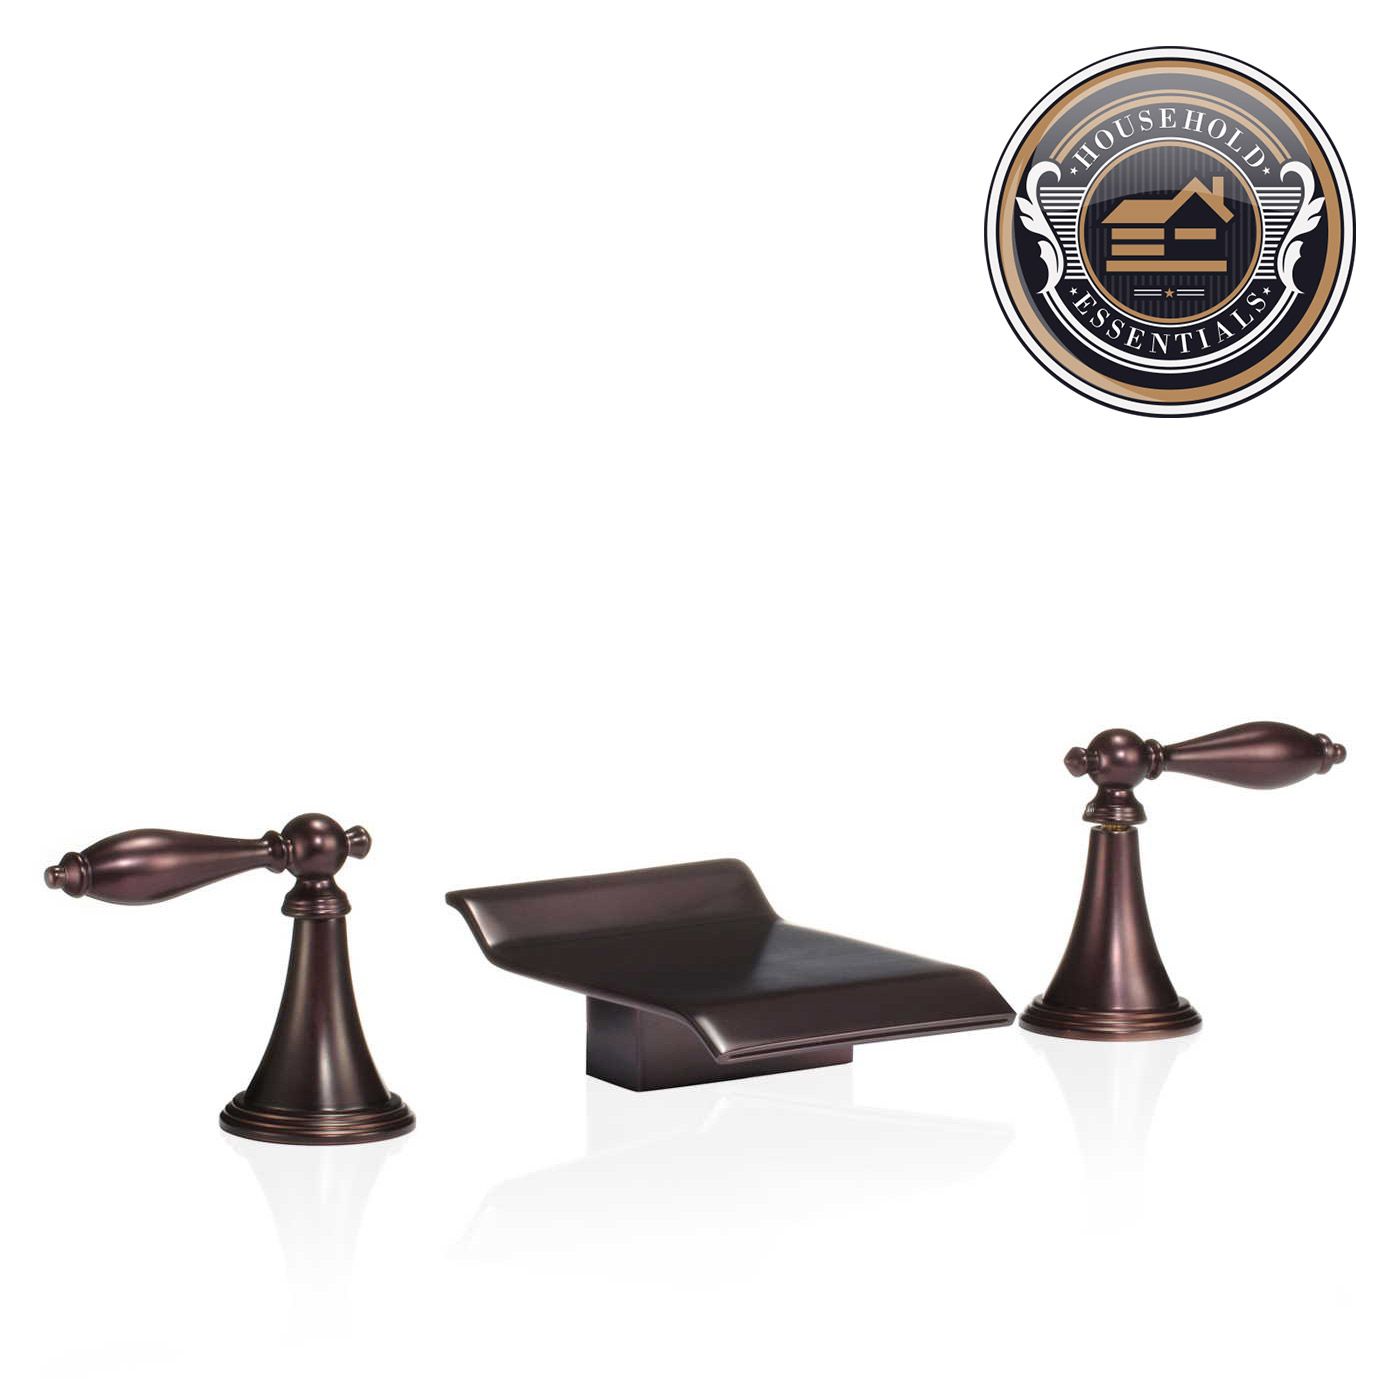 Oil Rubbed Bronze Widespread Bathroom Sink Roman Tub Waterfall ...